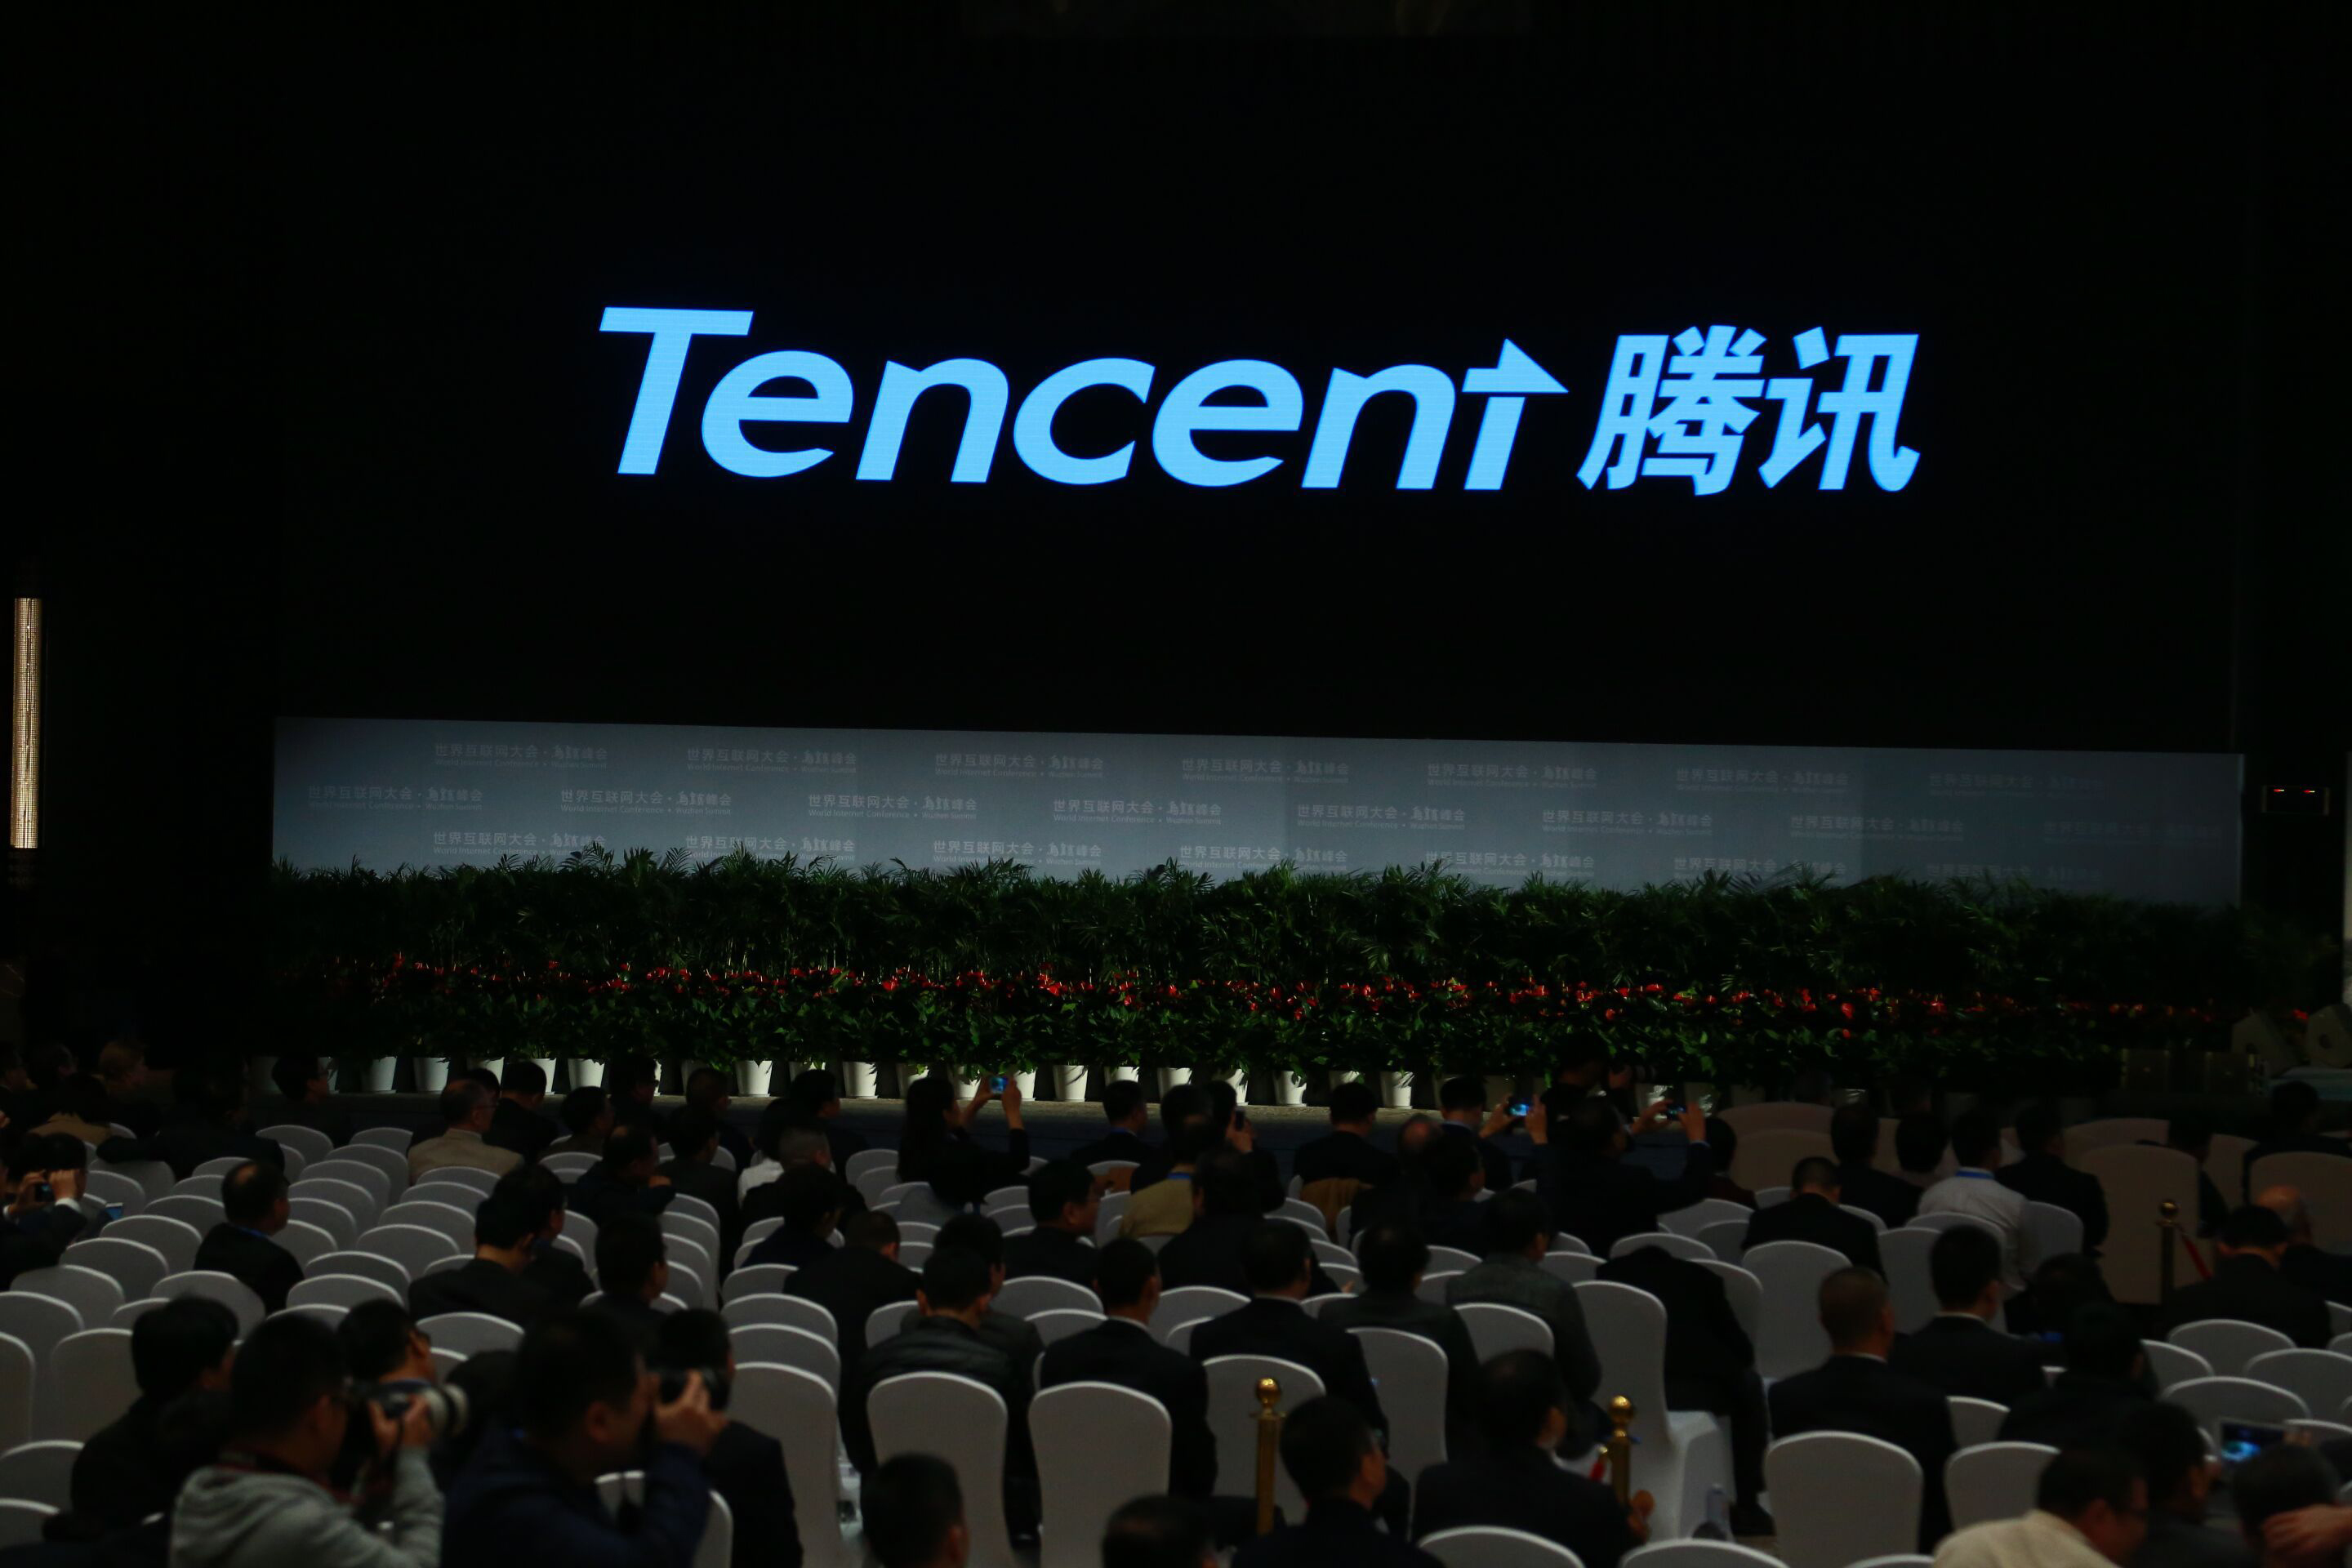 Tencent and JD.com invest $863M into e-commerce firm Vipshop to battle Alibaba